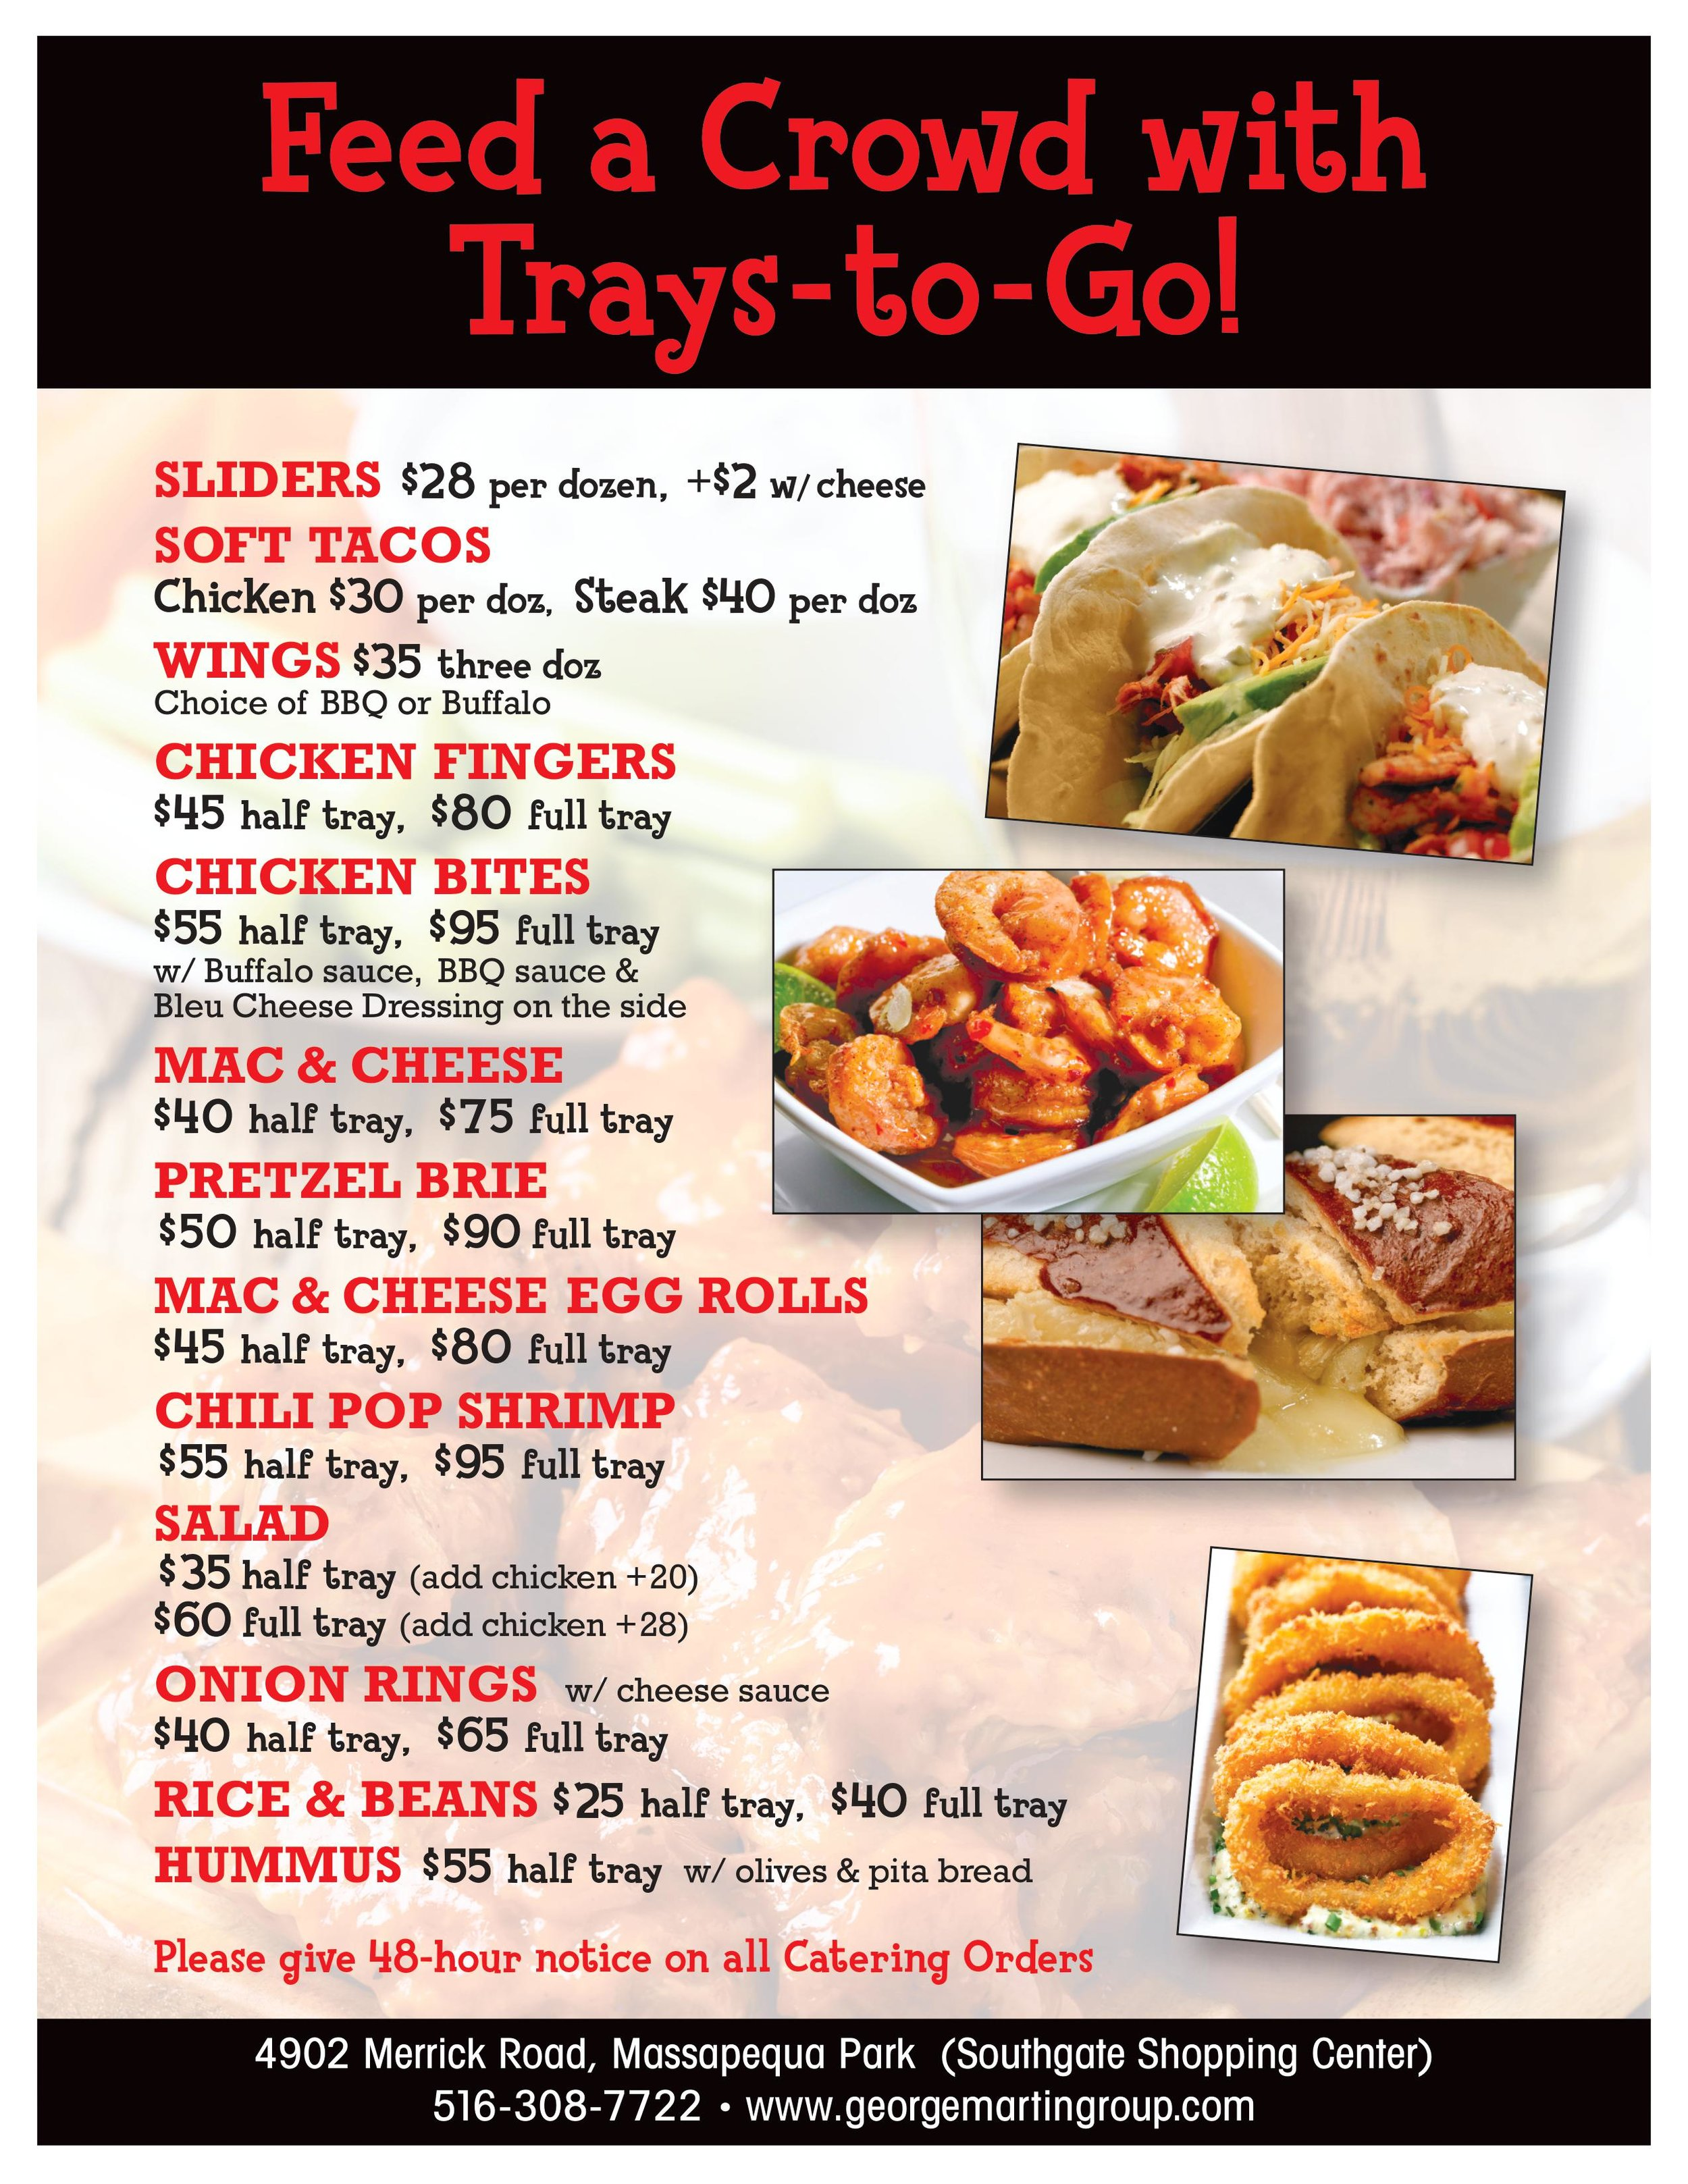 Feed a crowd with trays to go flyer, catering flyer and menu